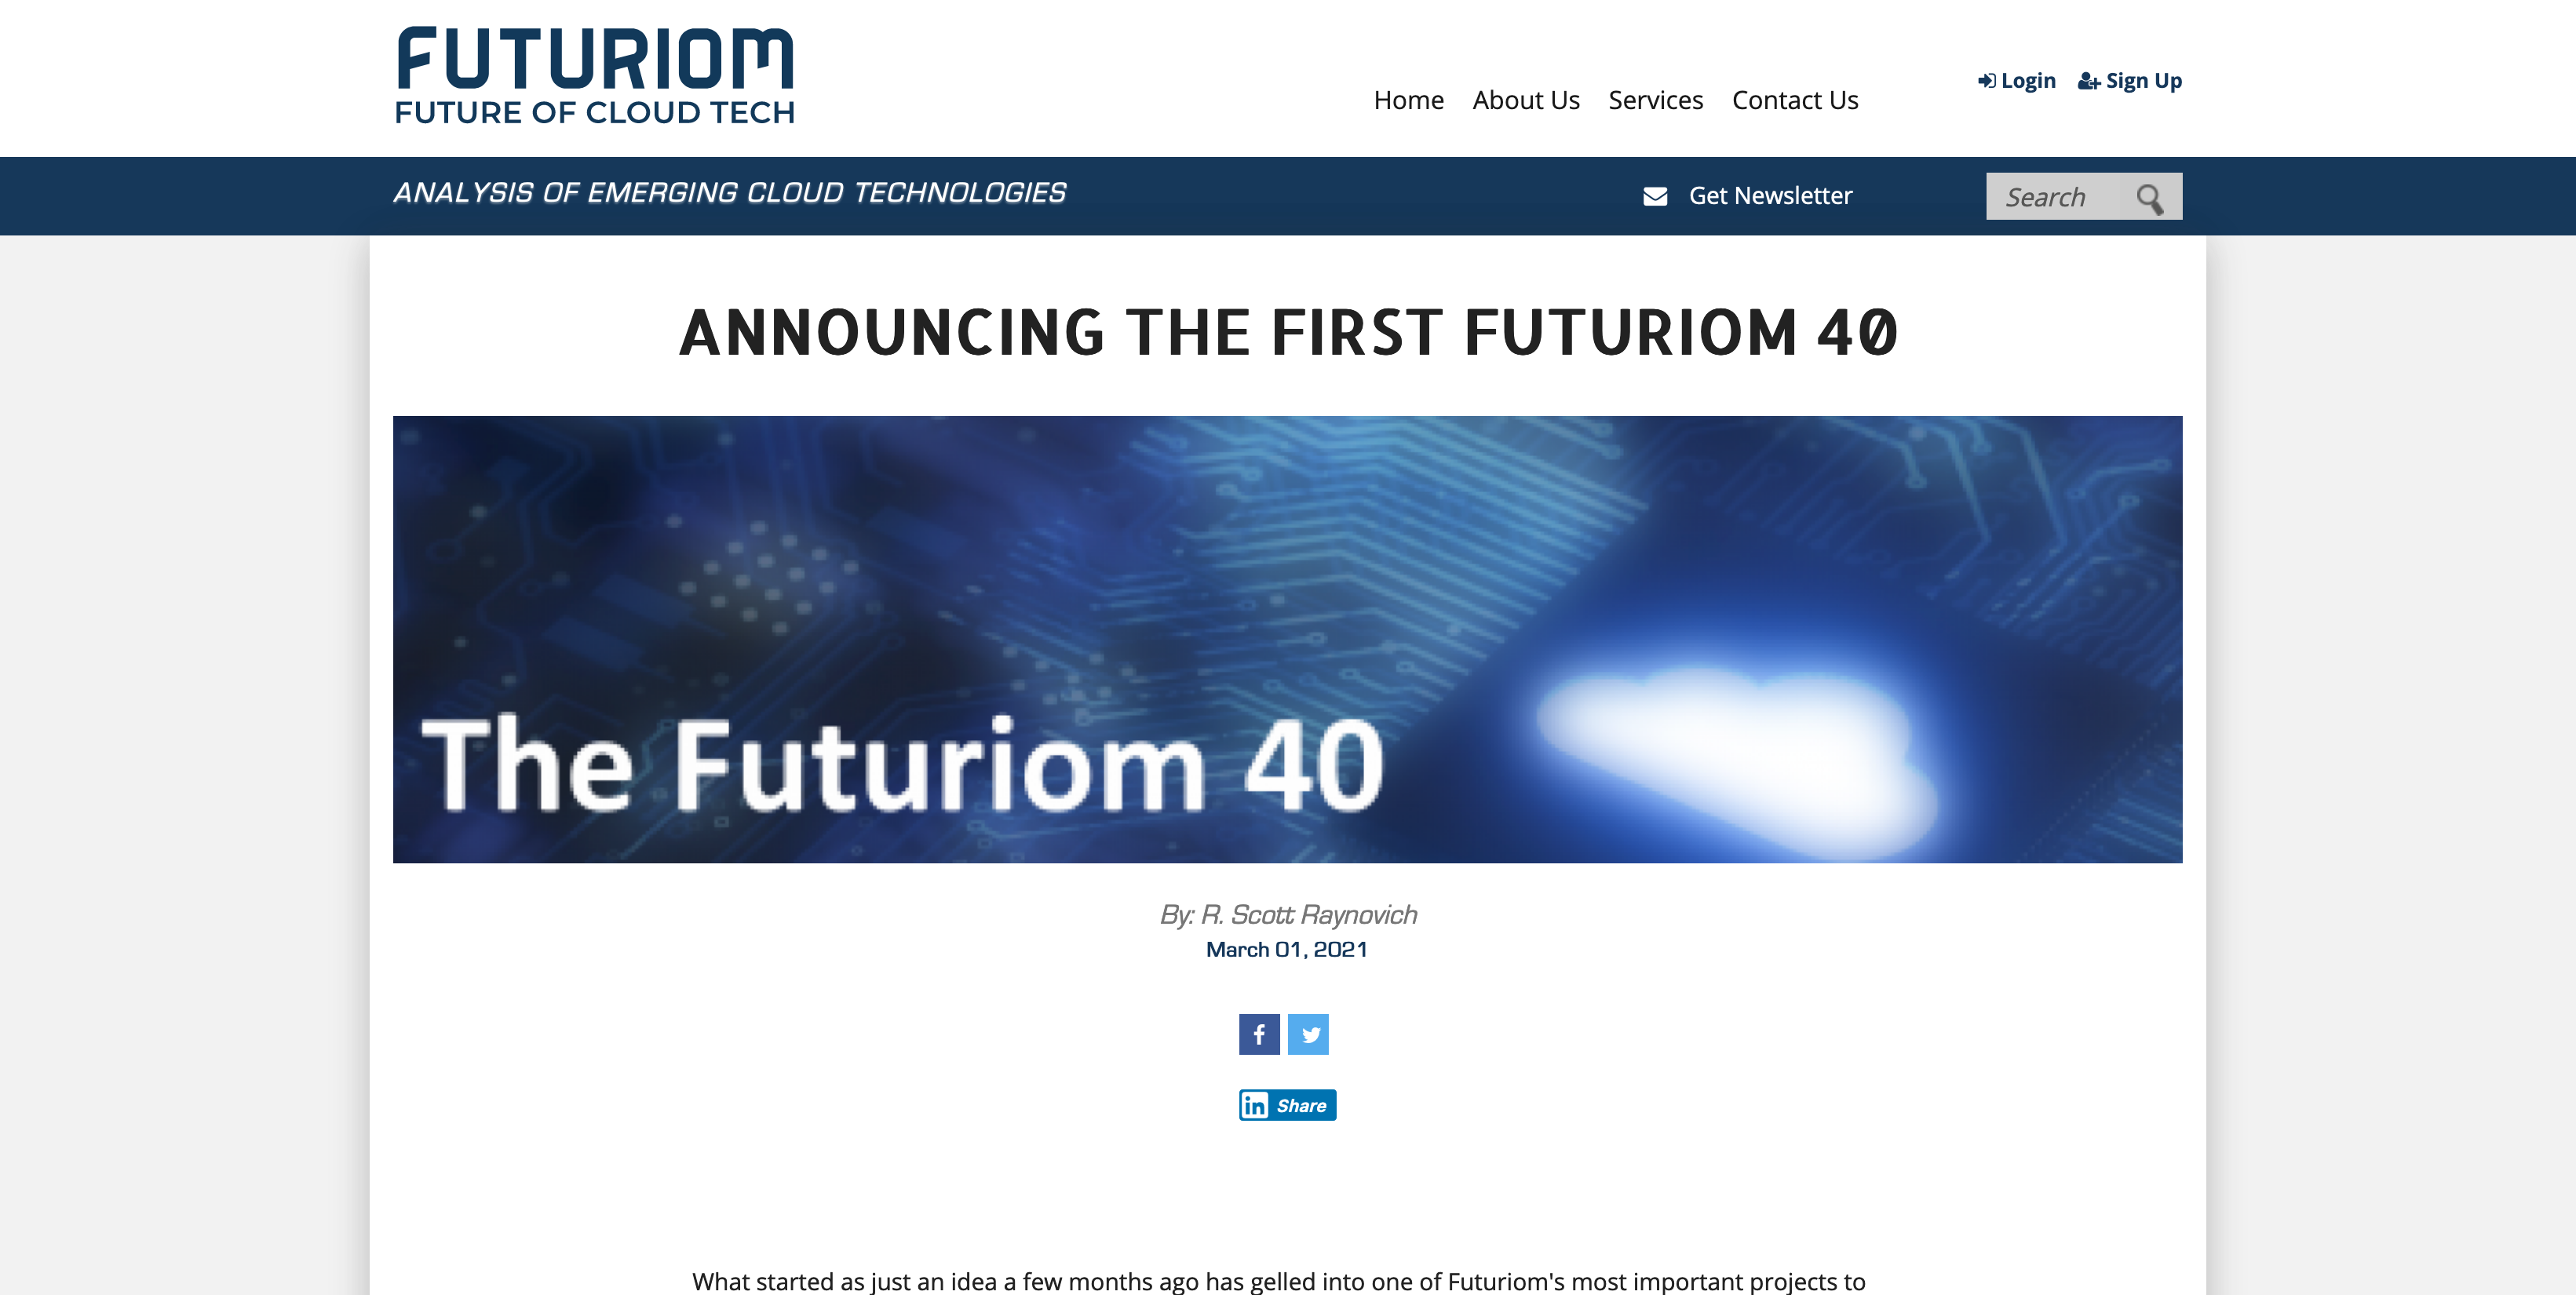 Futuriom - TriggerMesh Announced in First Futuriom 40